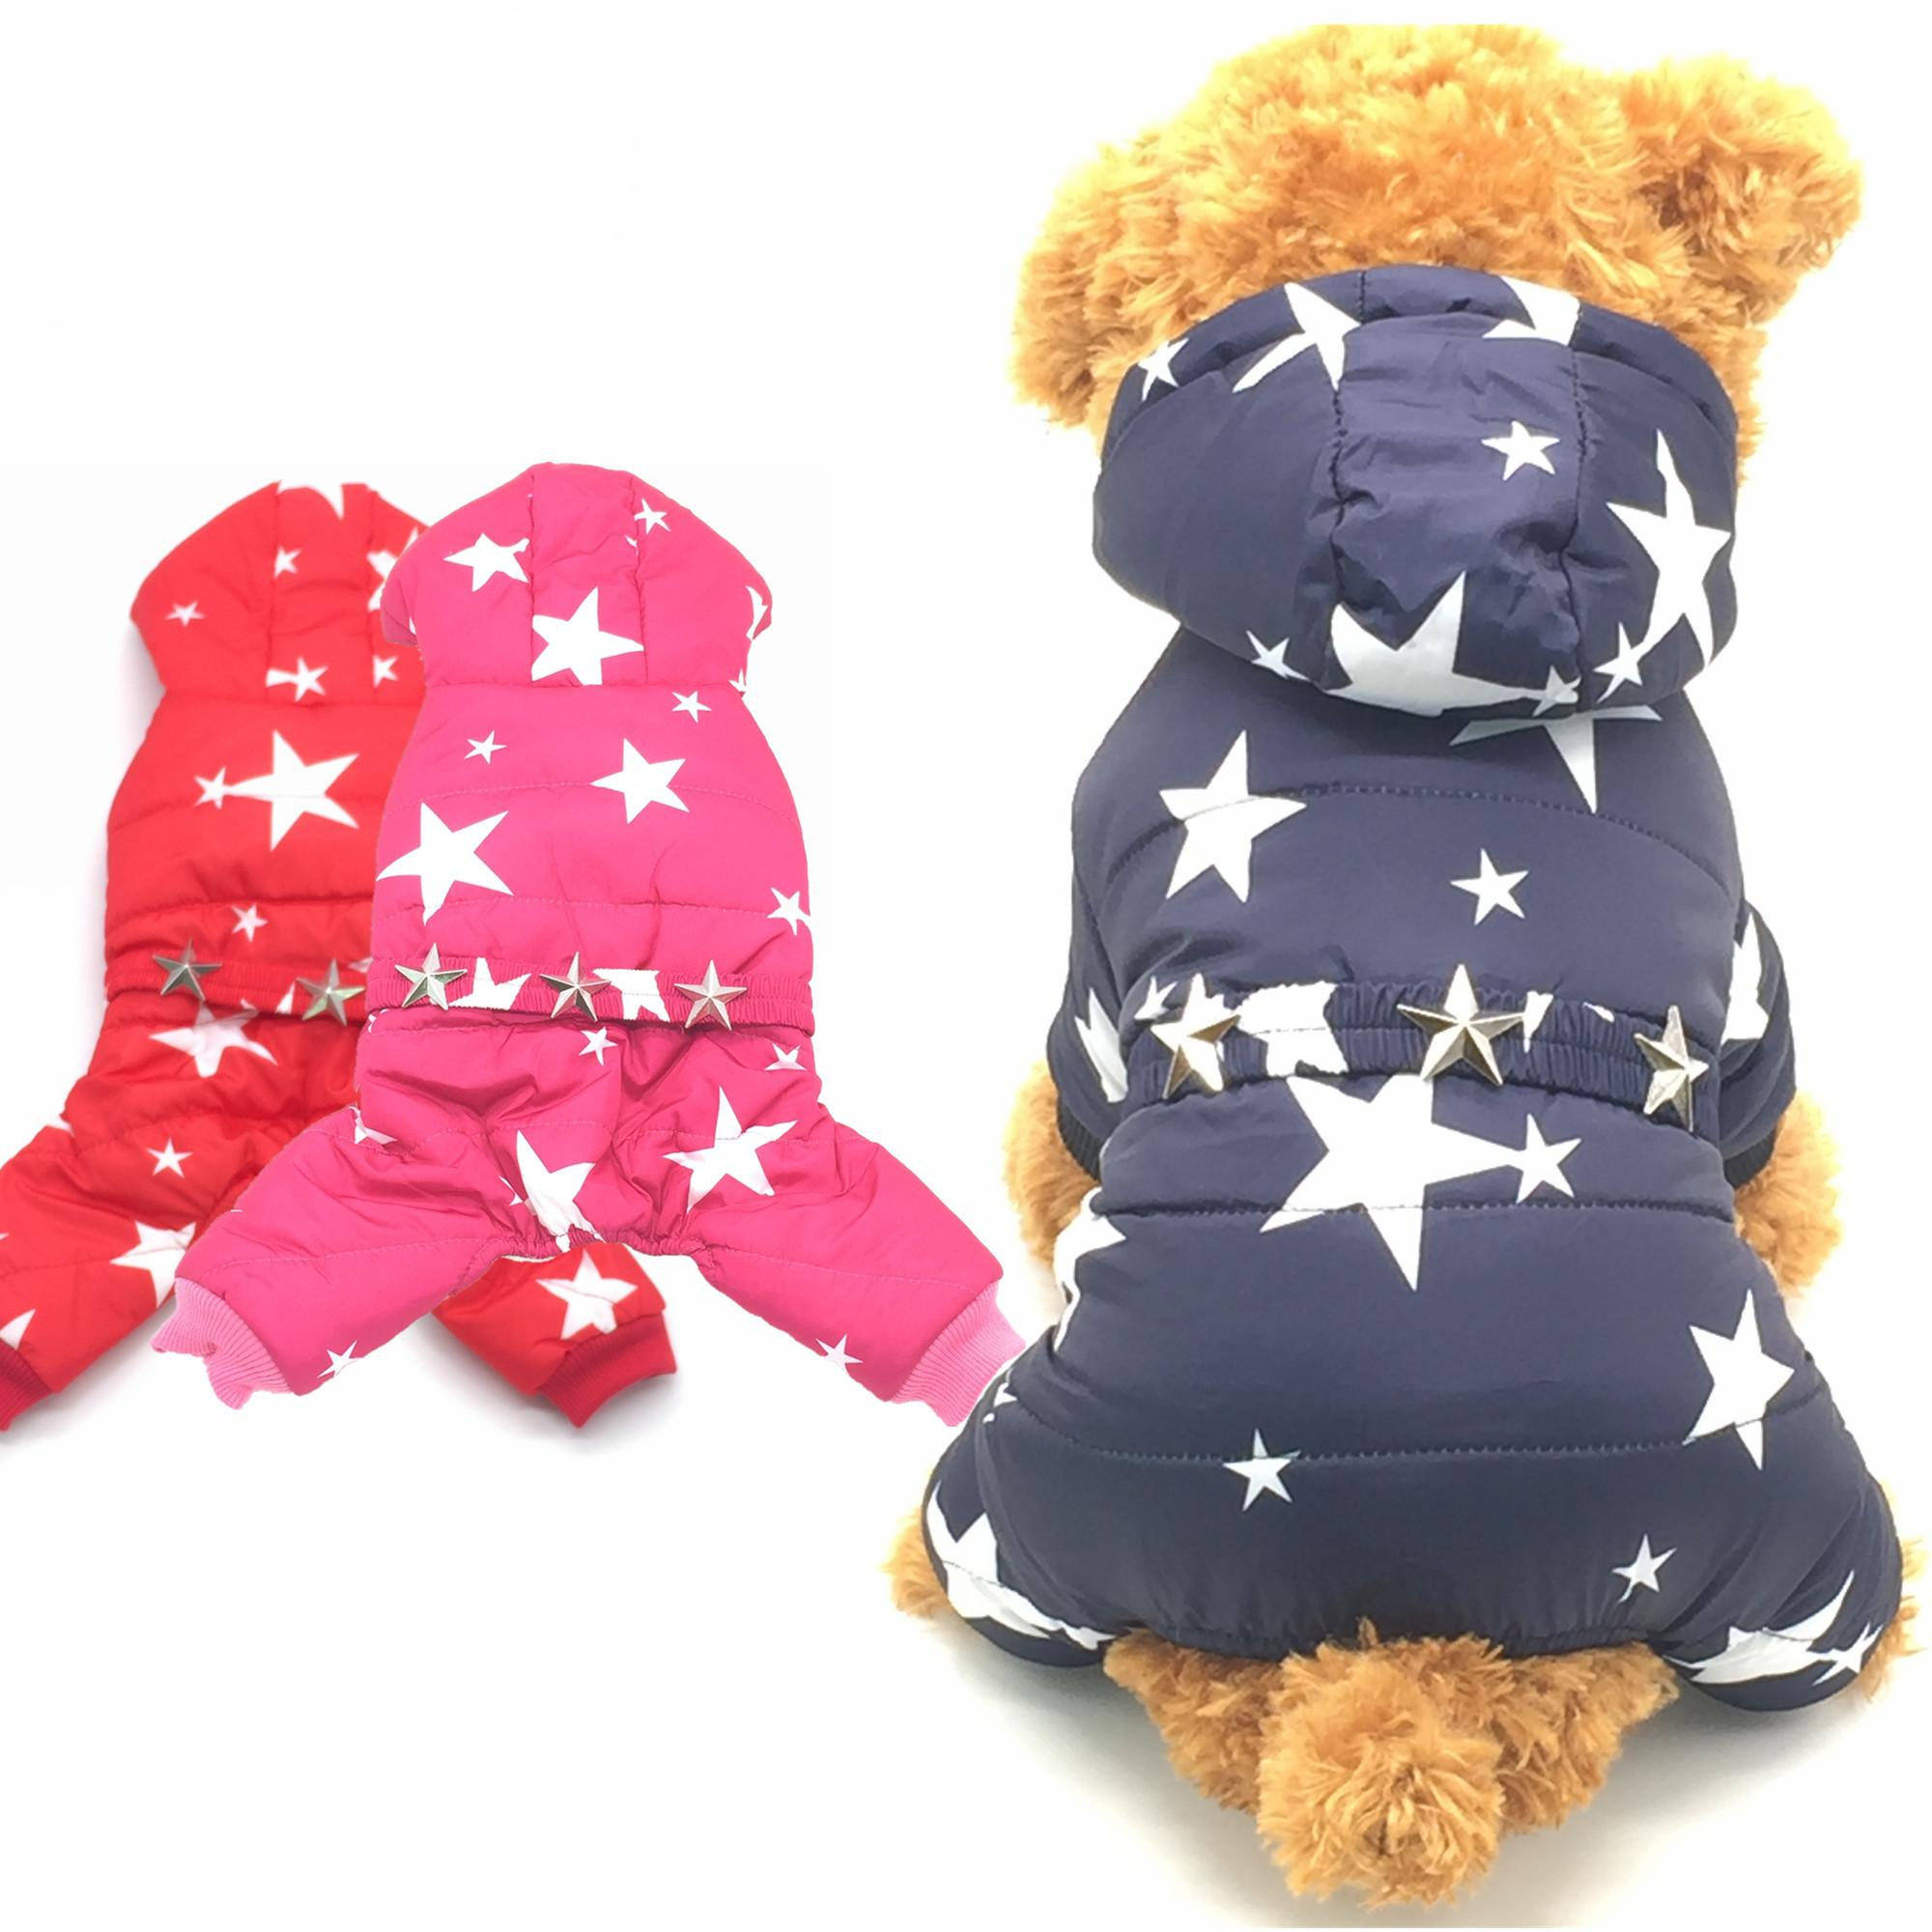 fd7e9a93b000 King -S Pet Dogs Pets Clothing Coat Jacket Teddy Chihuahua More ...